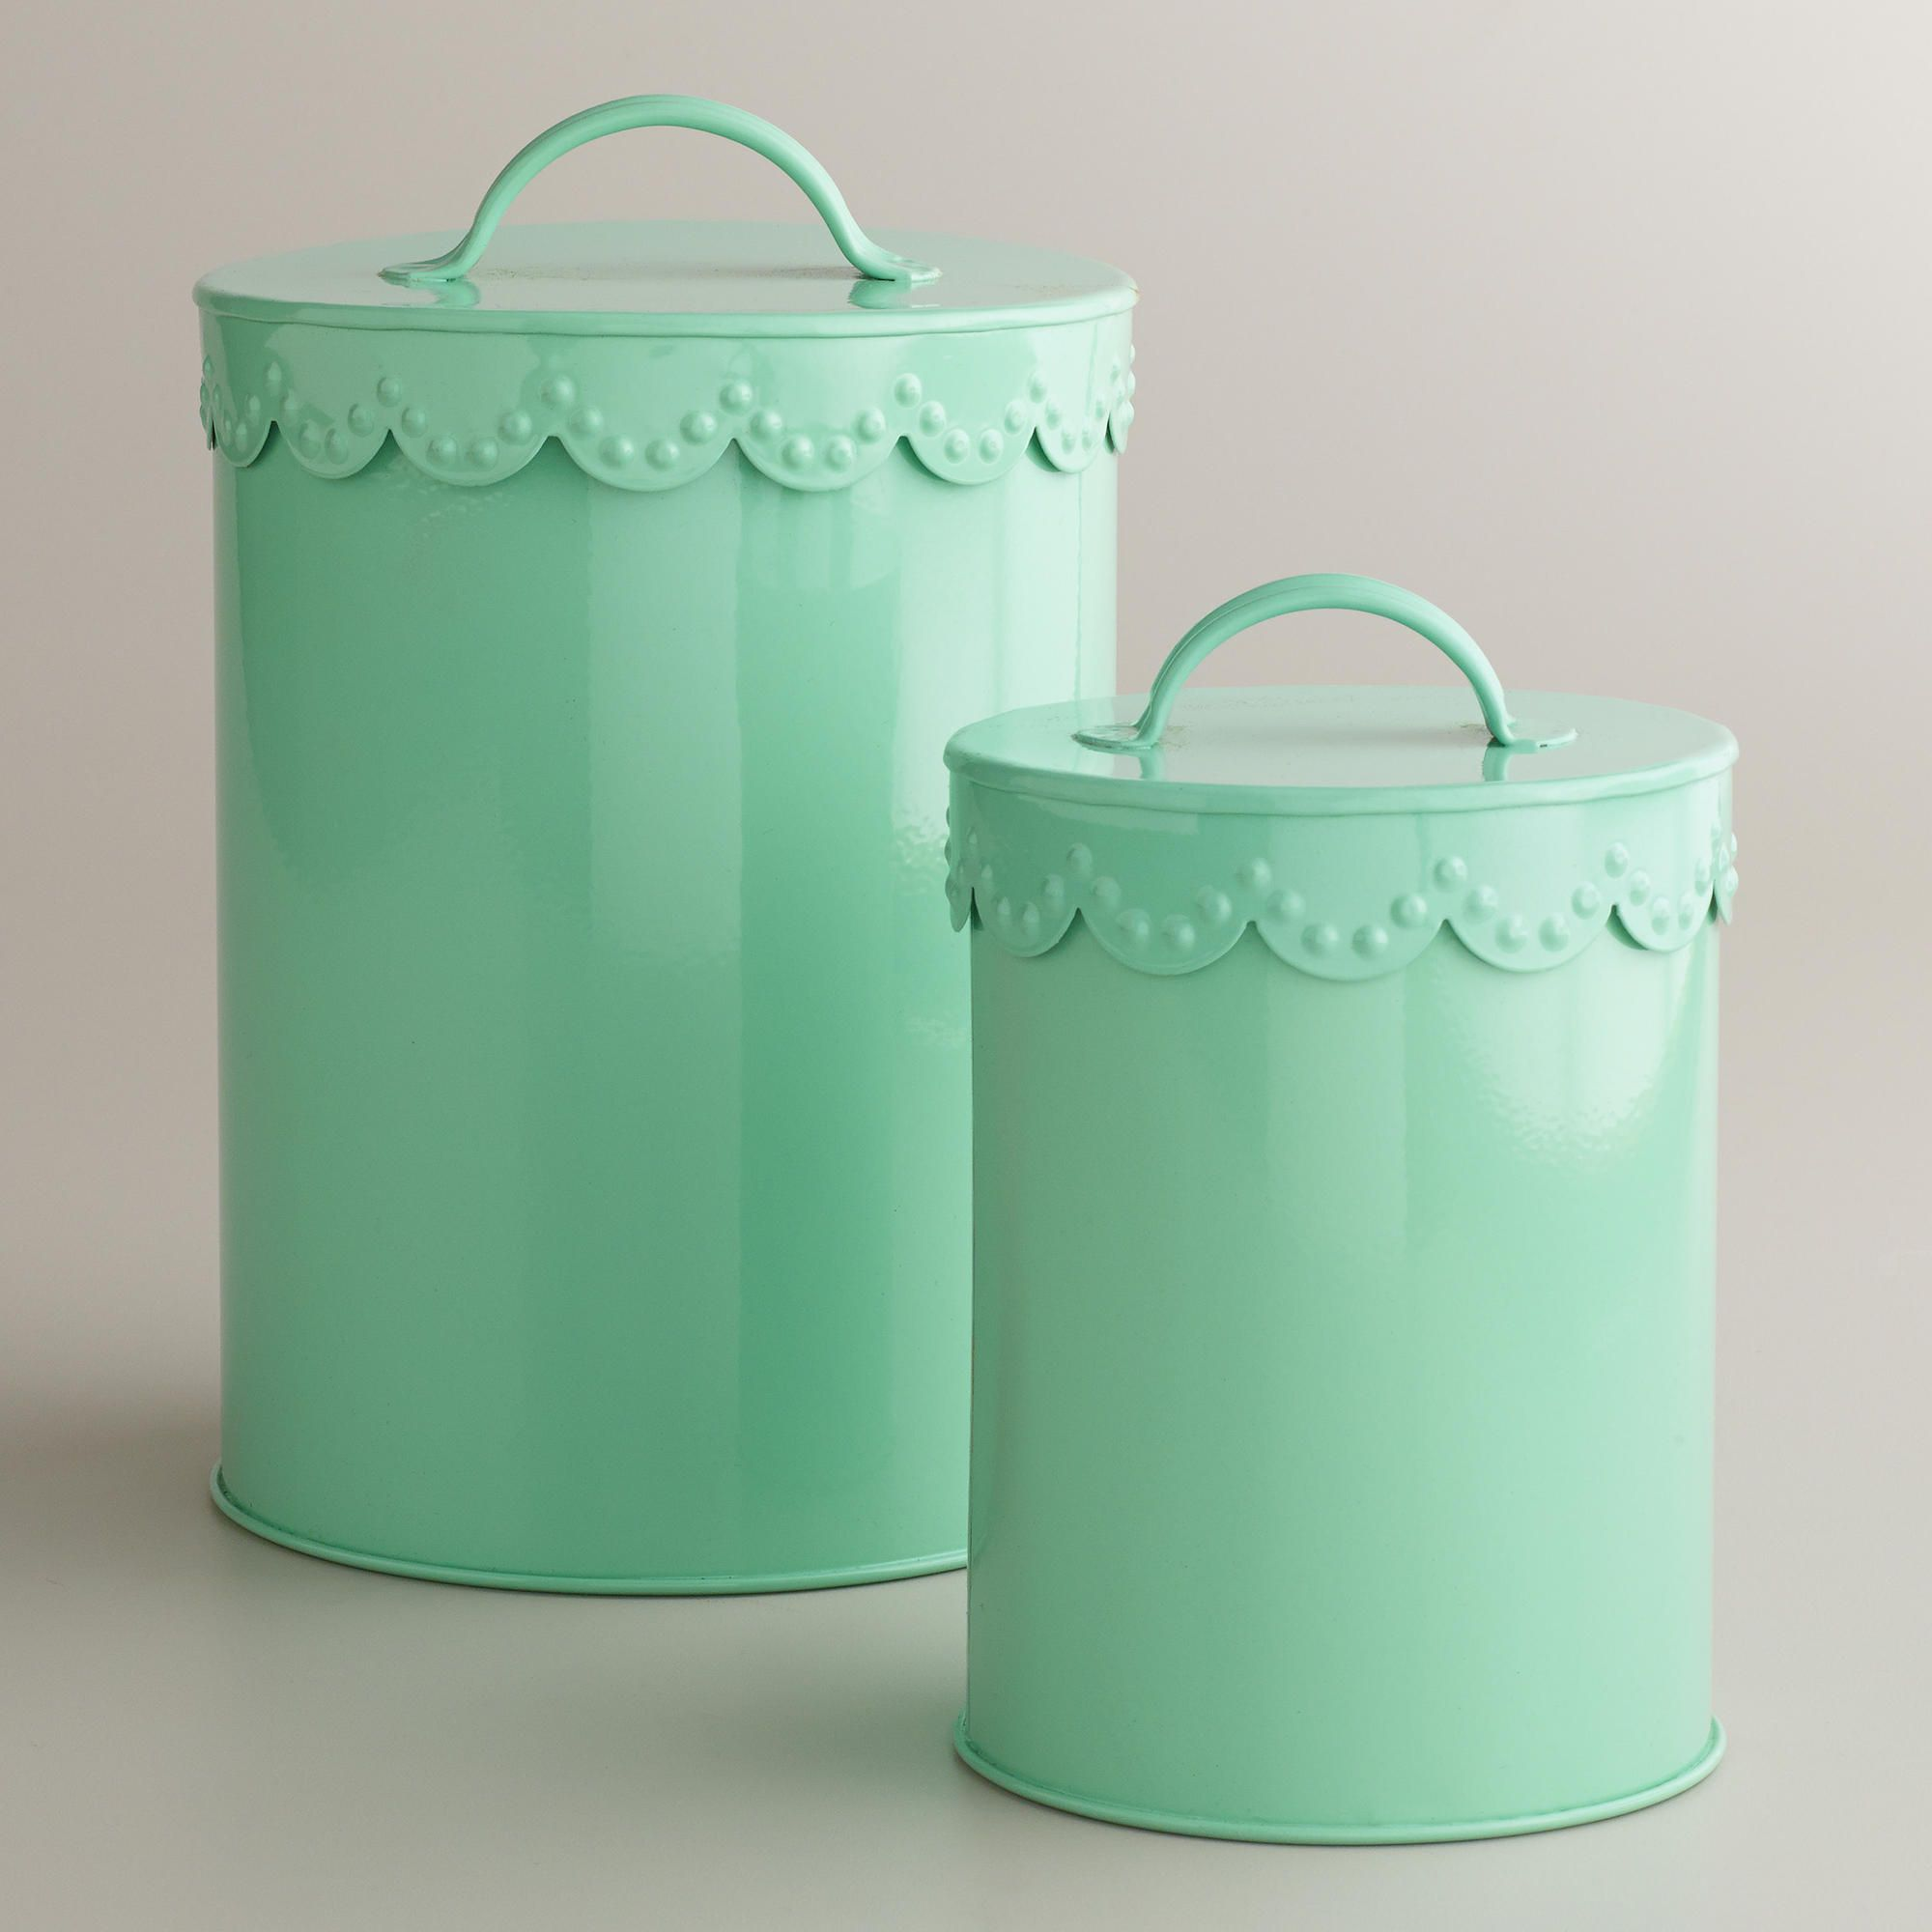 Mint Vintage Scalloped Top Canisters, $5 + $7 | World Market...these ...